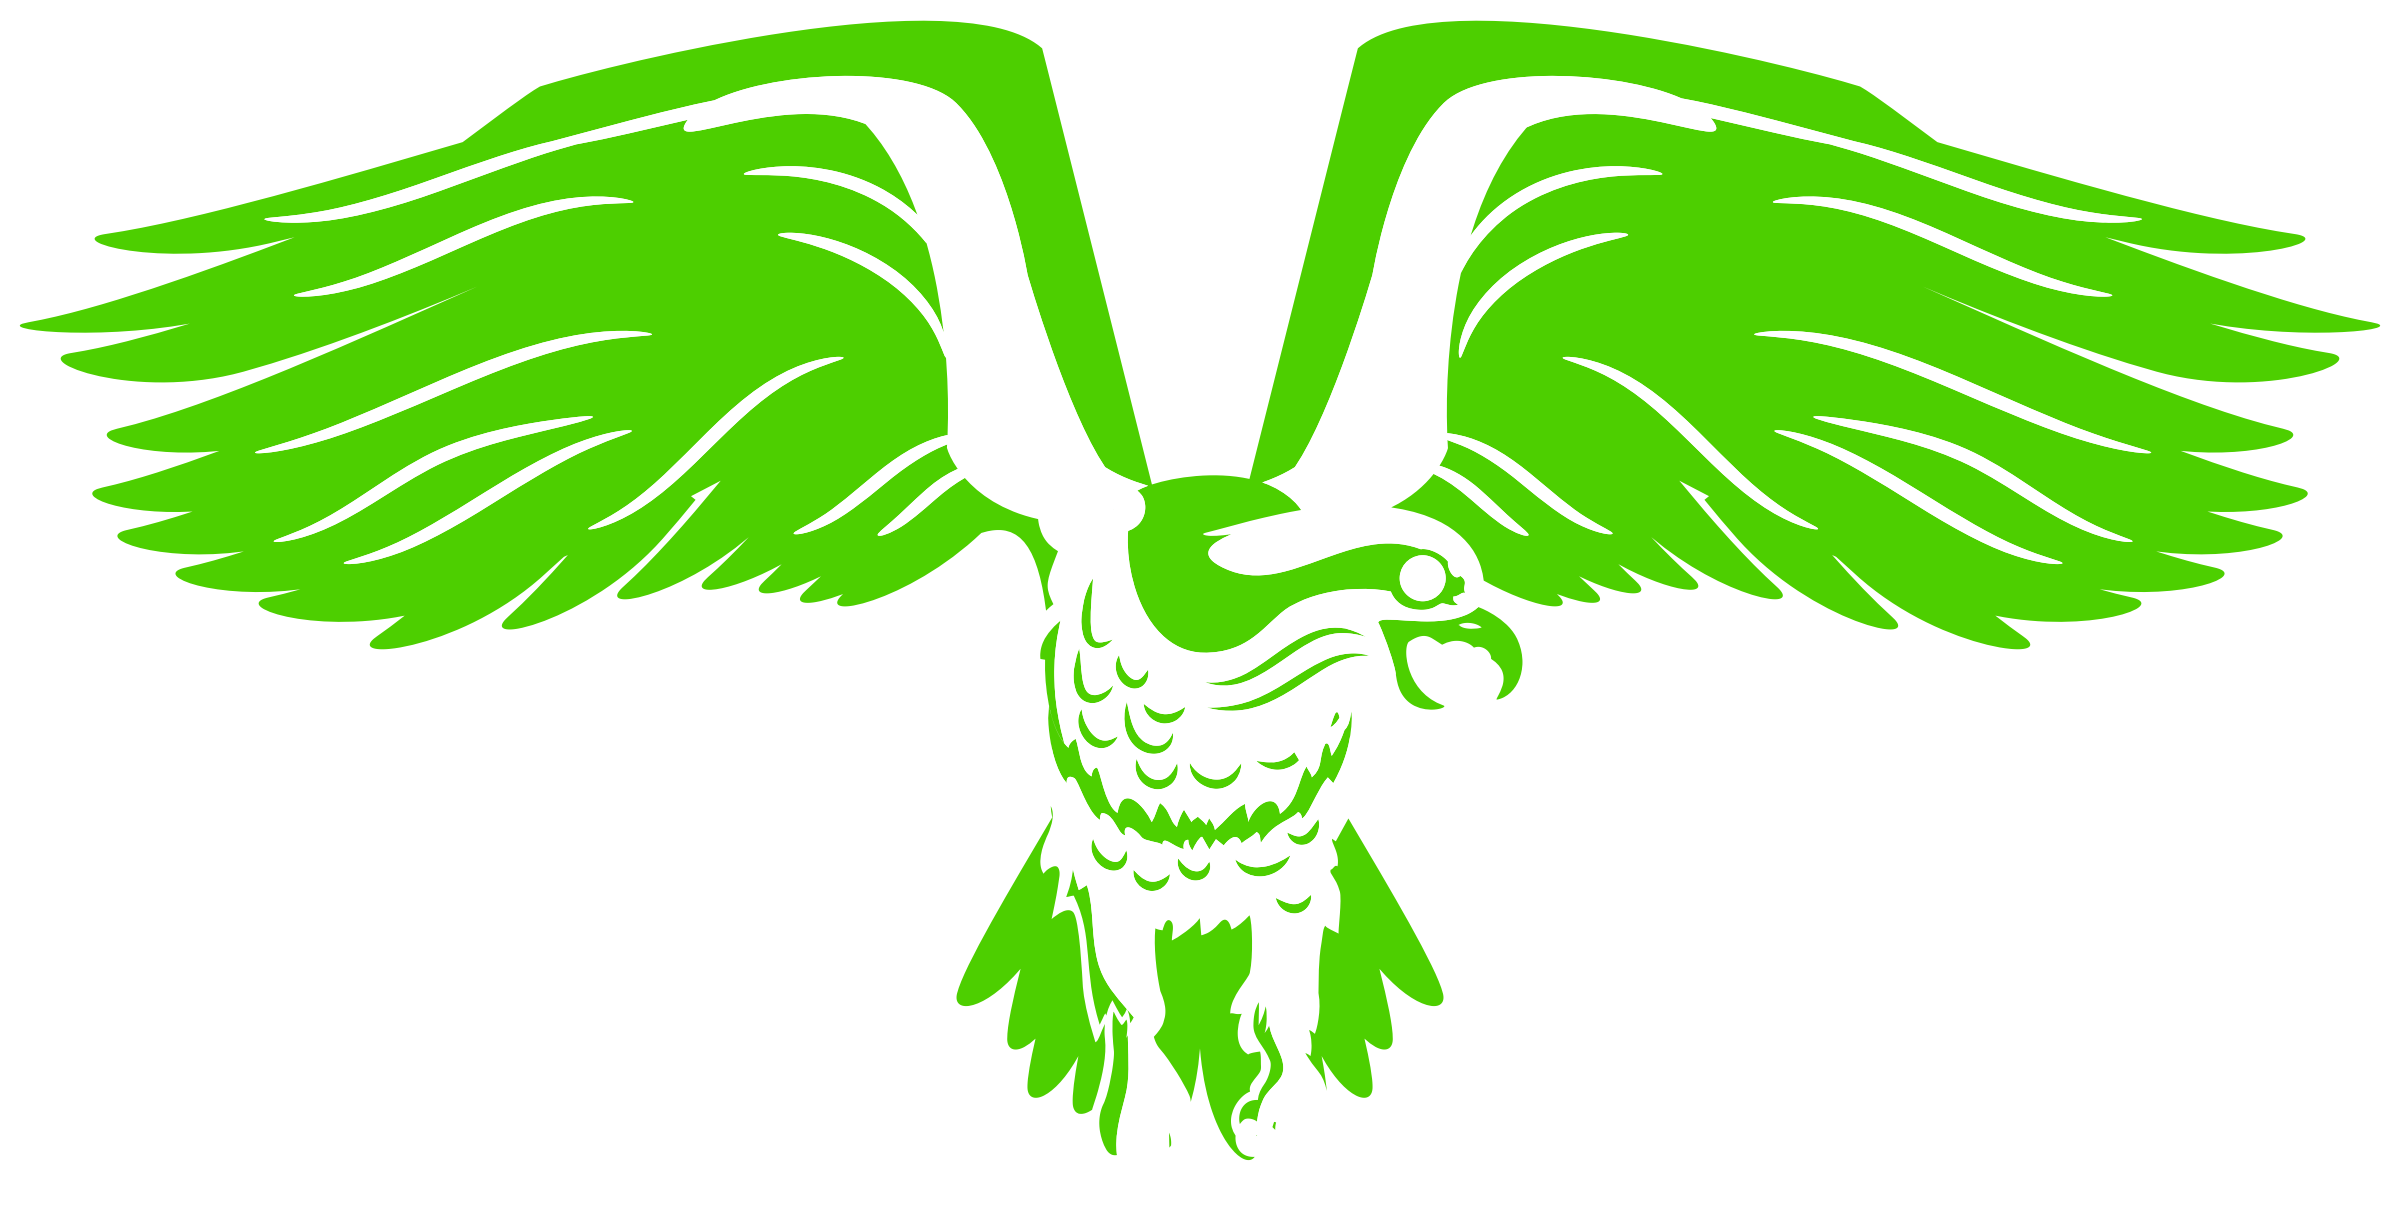 Seahawks vector clipart. Seahawk icons png free